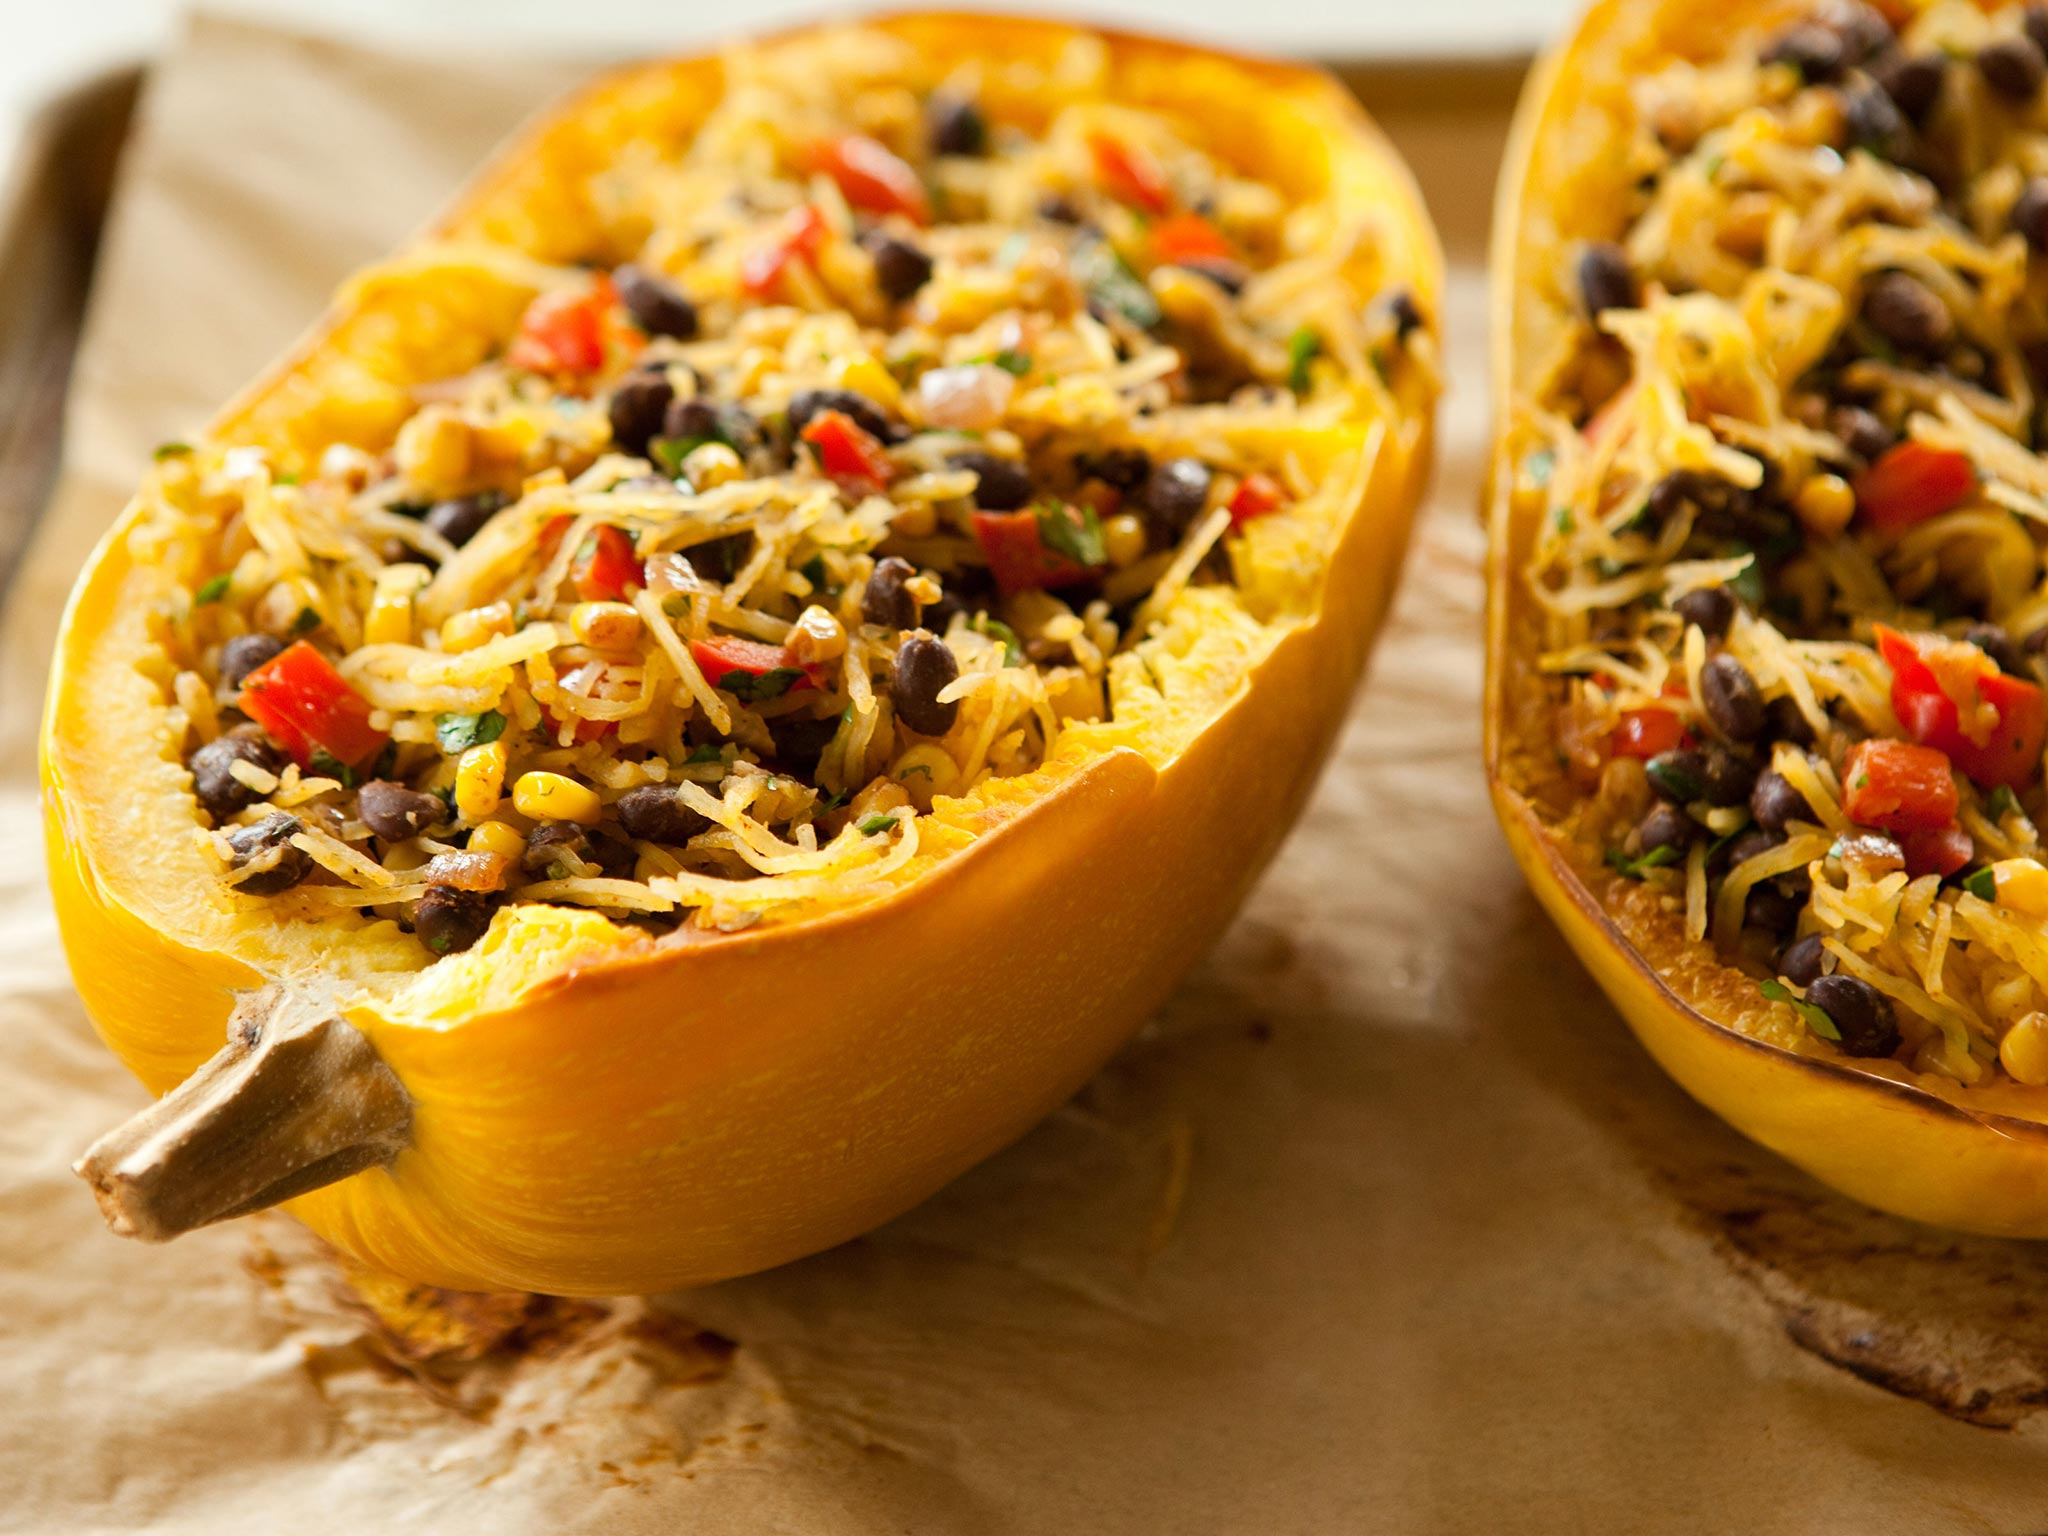 Recipe Spicy Spaghetti Squash With Black Beans Whole Foods Market